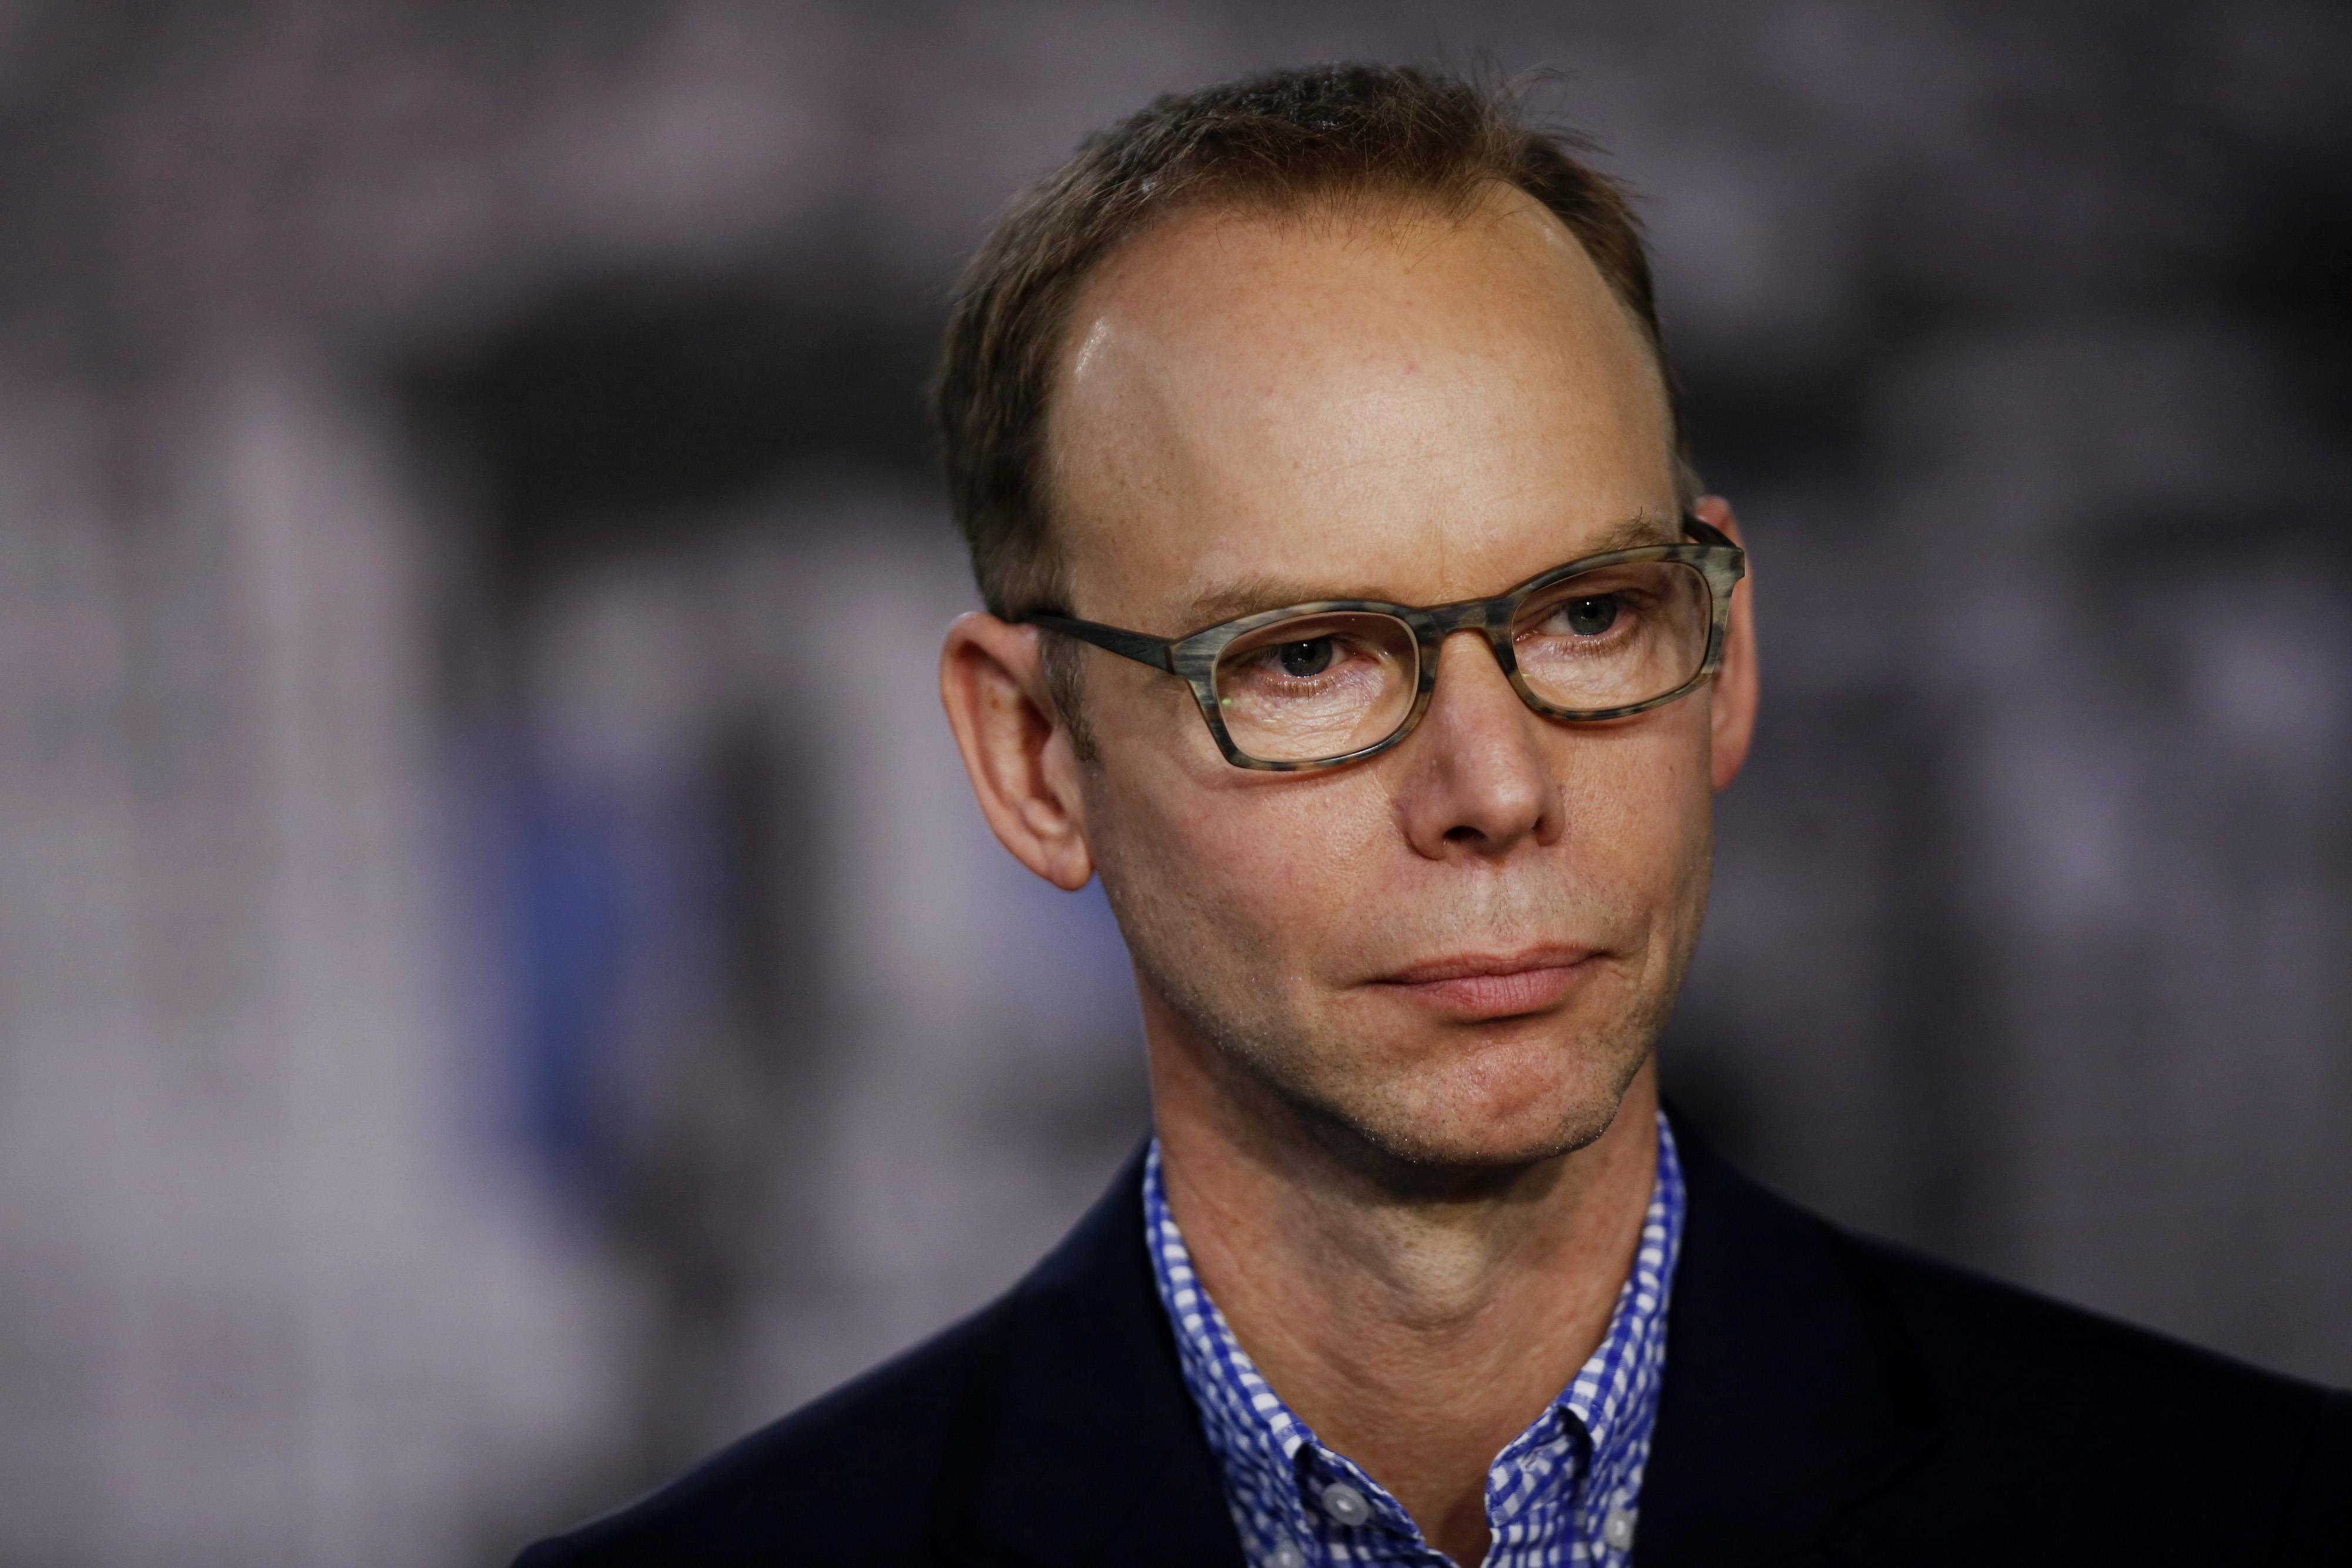 Chipotle Mexican Grill Chief Executive Officer Steve Ells Interview